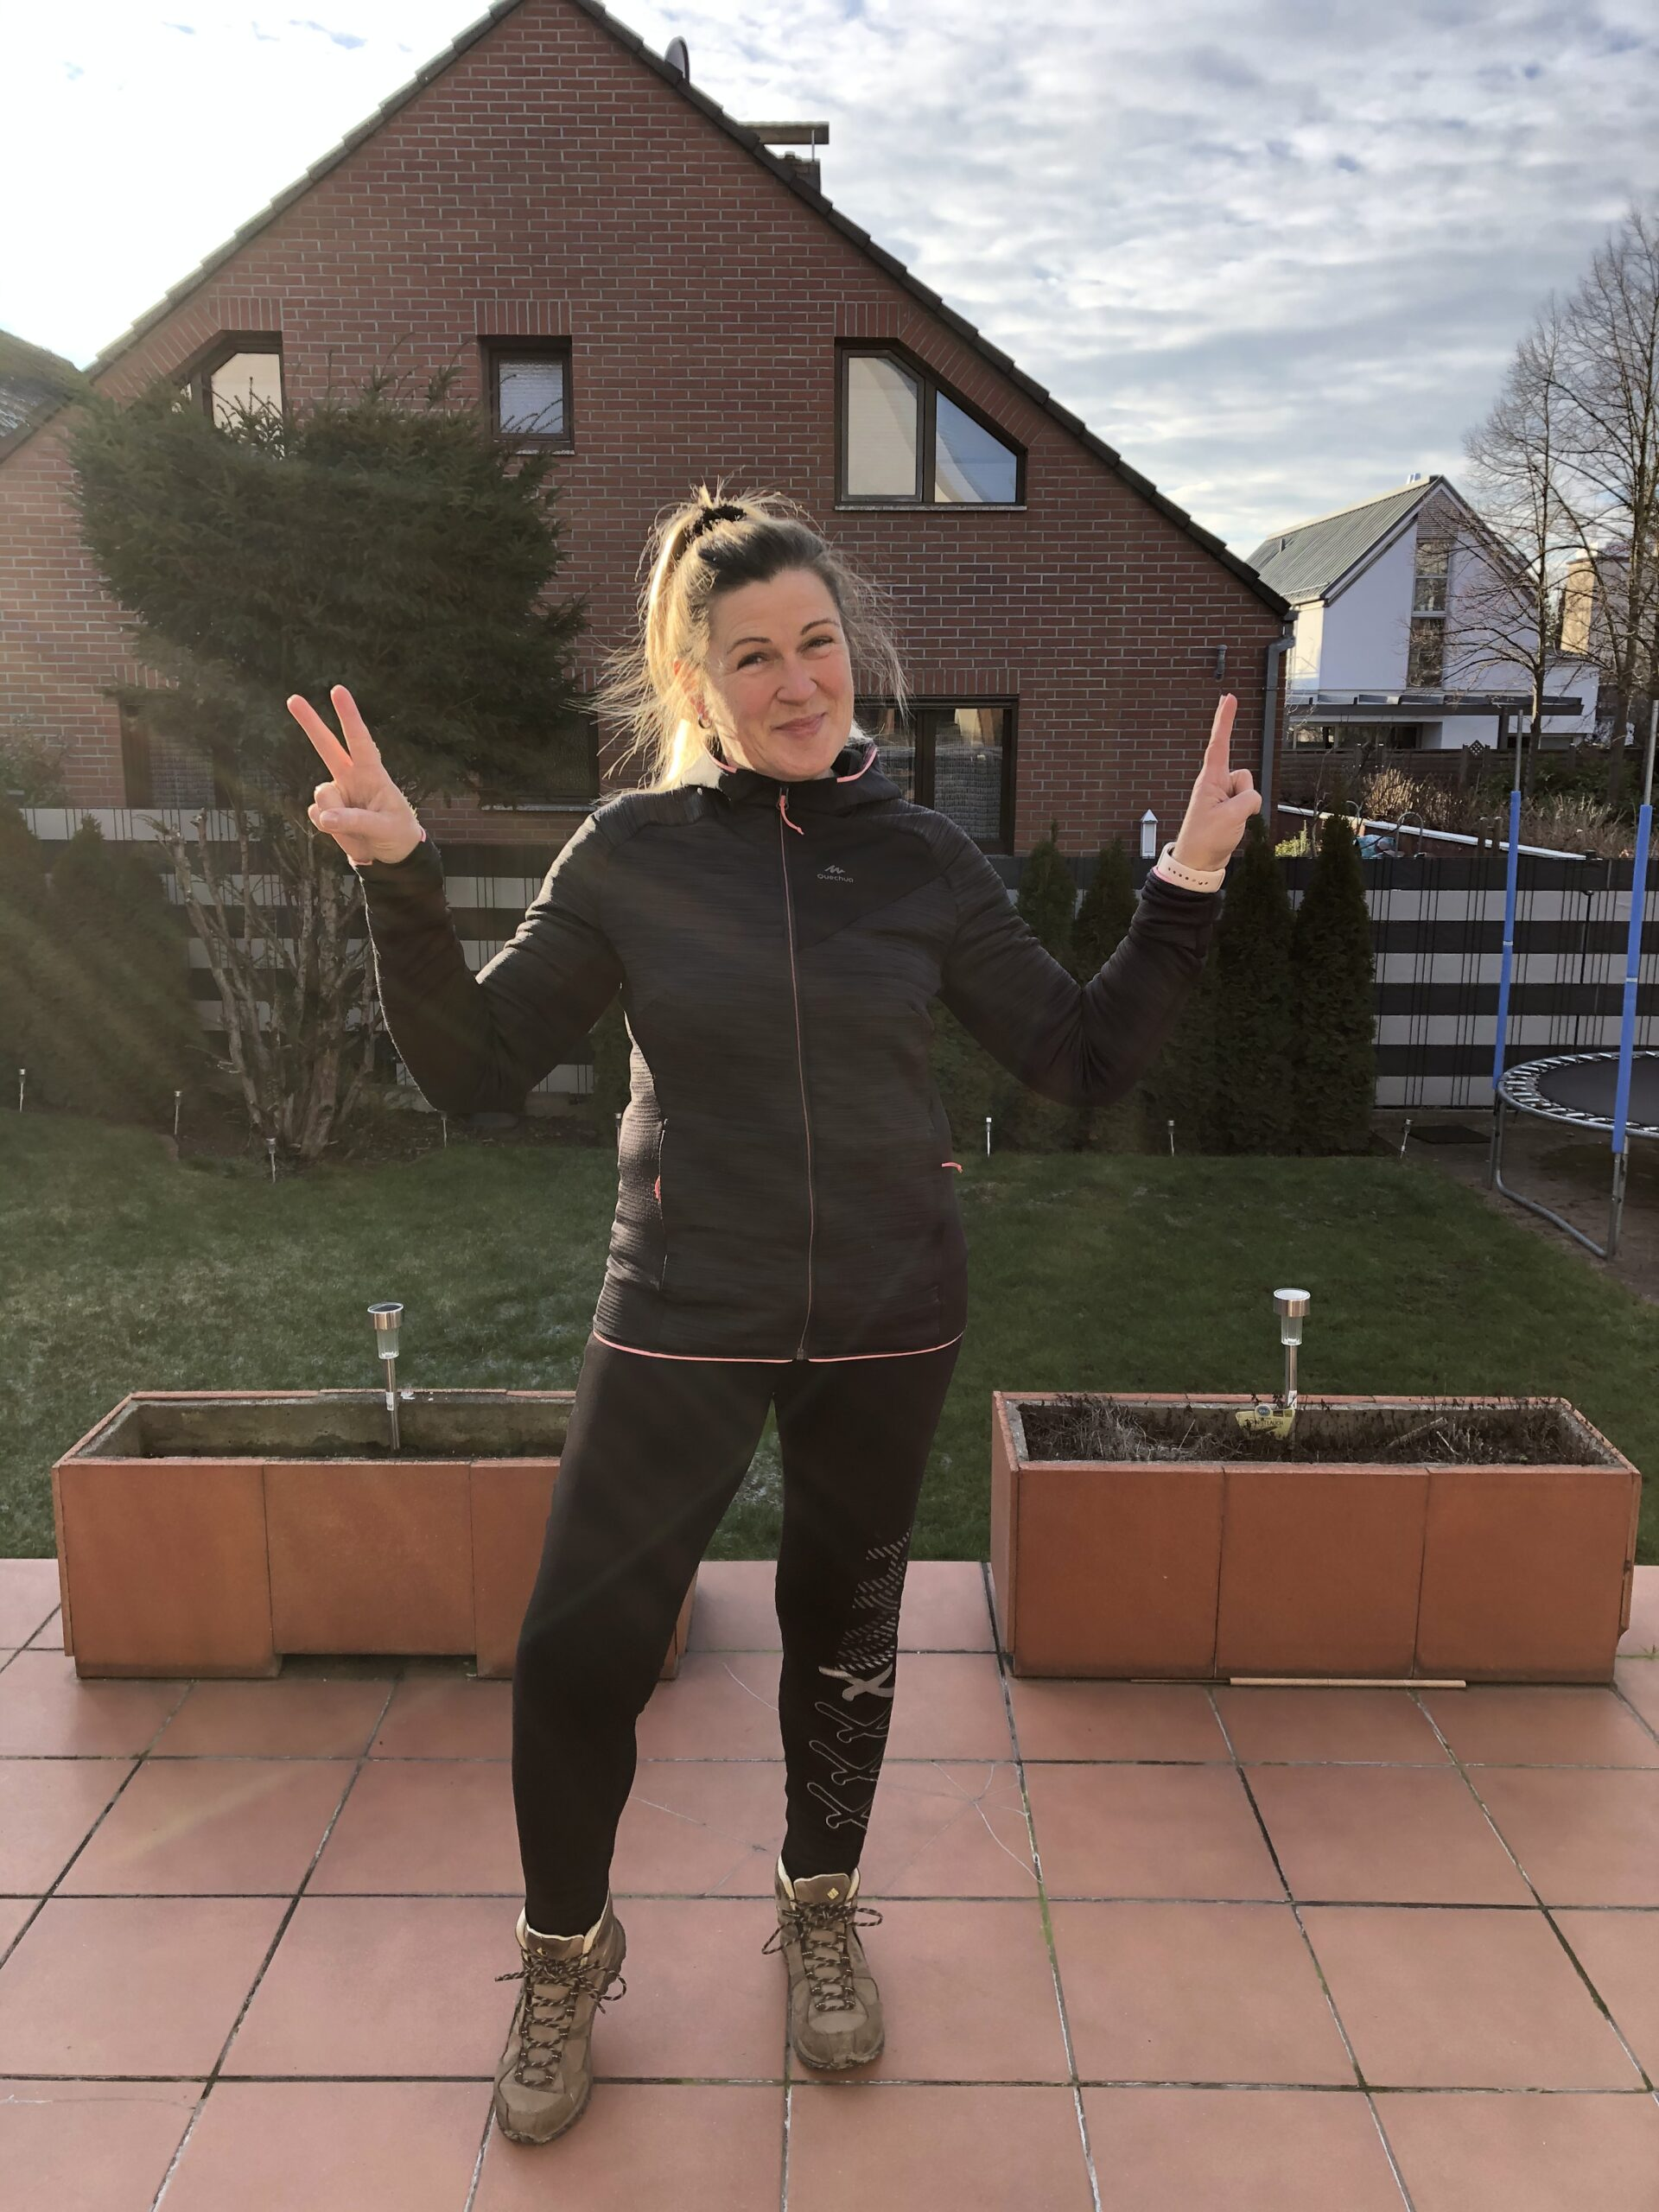 Read more about the article Los geht's – Sport hält fit